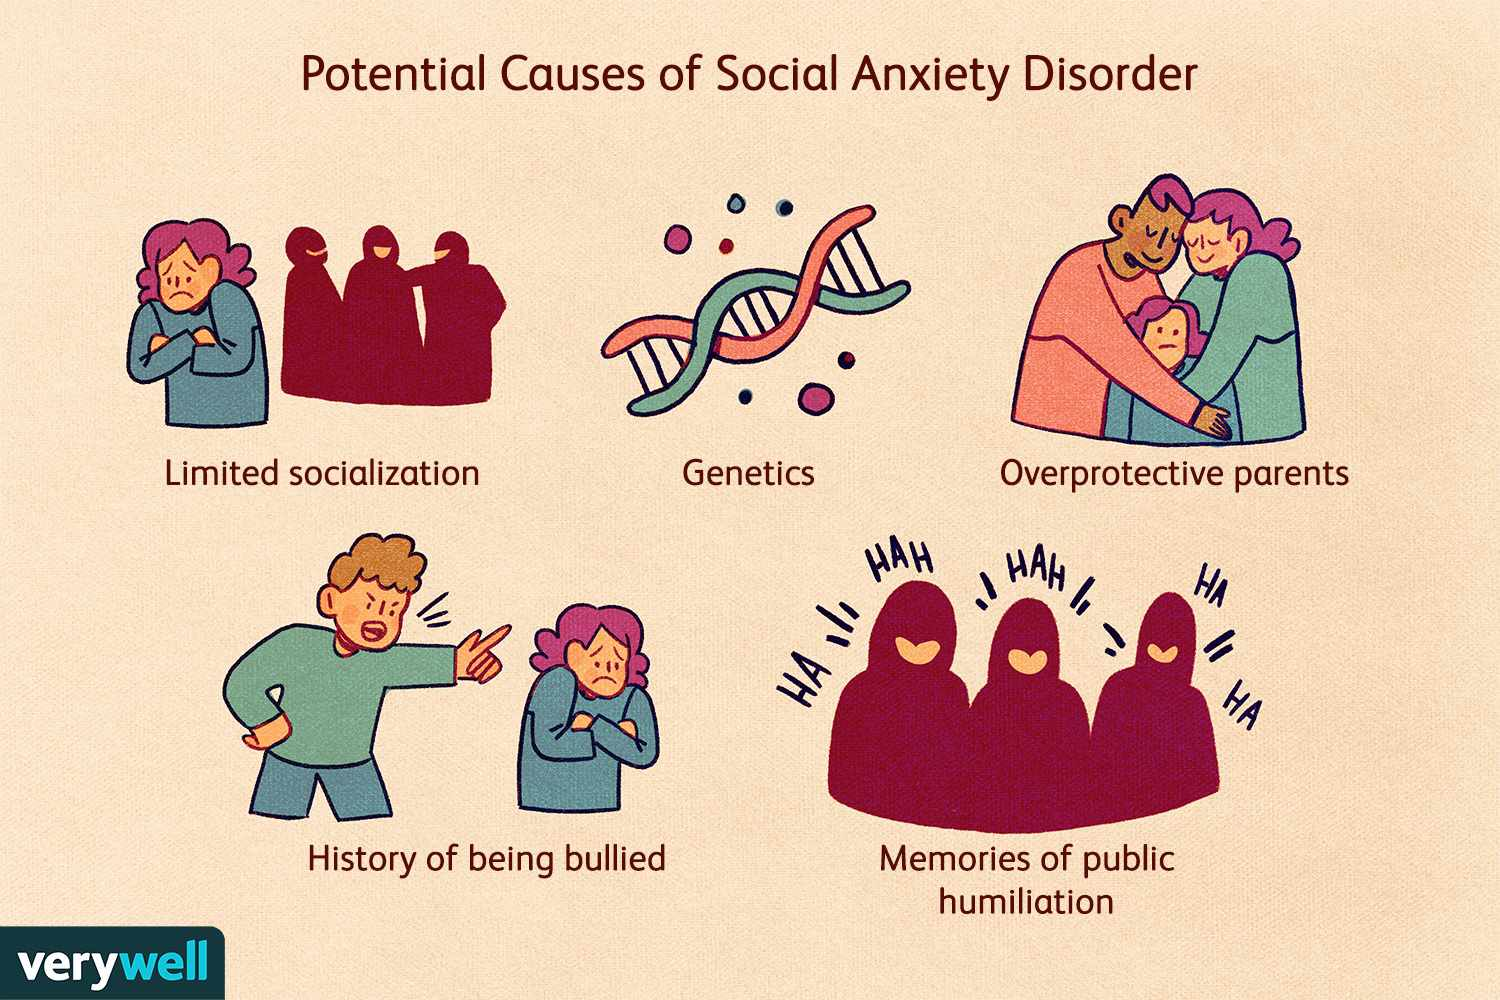 Potential Causes of Social Anxiety Disorder